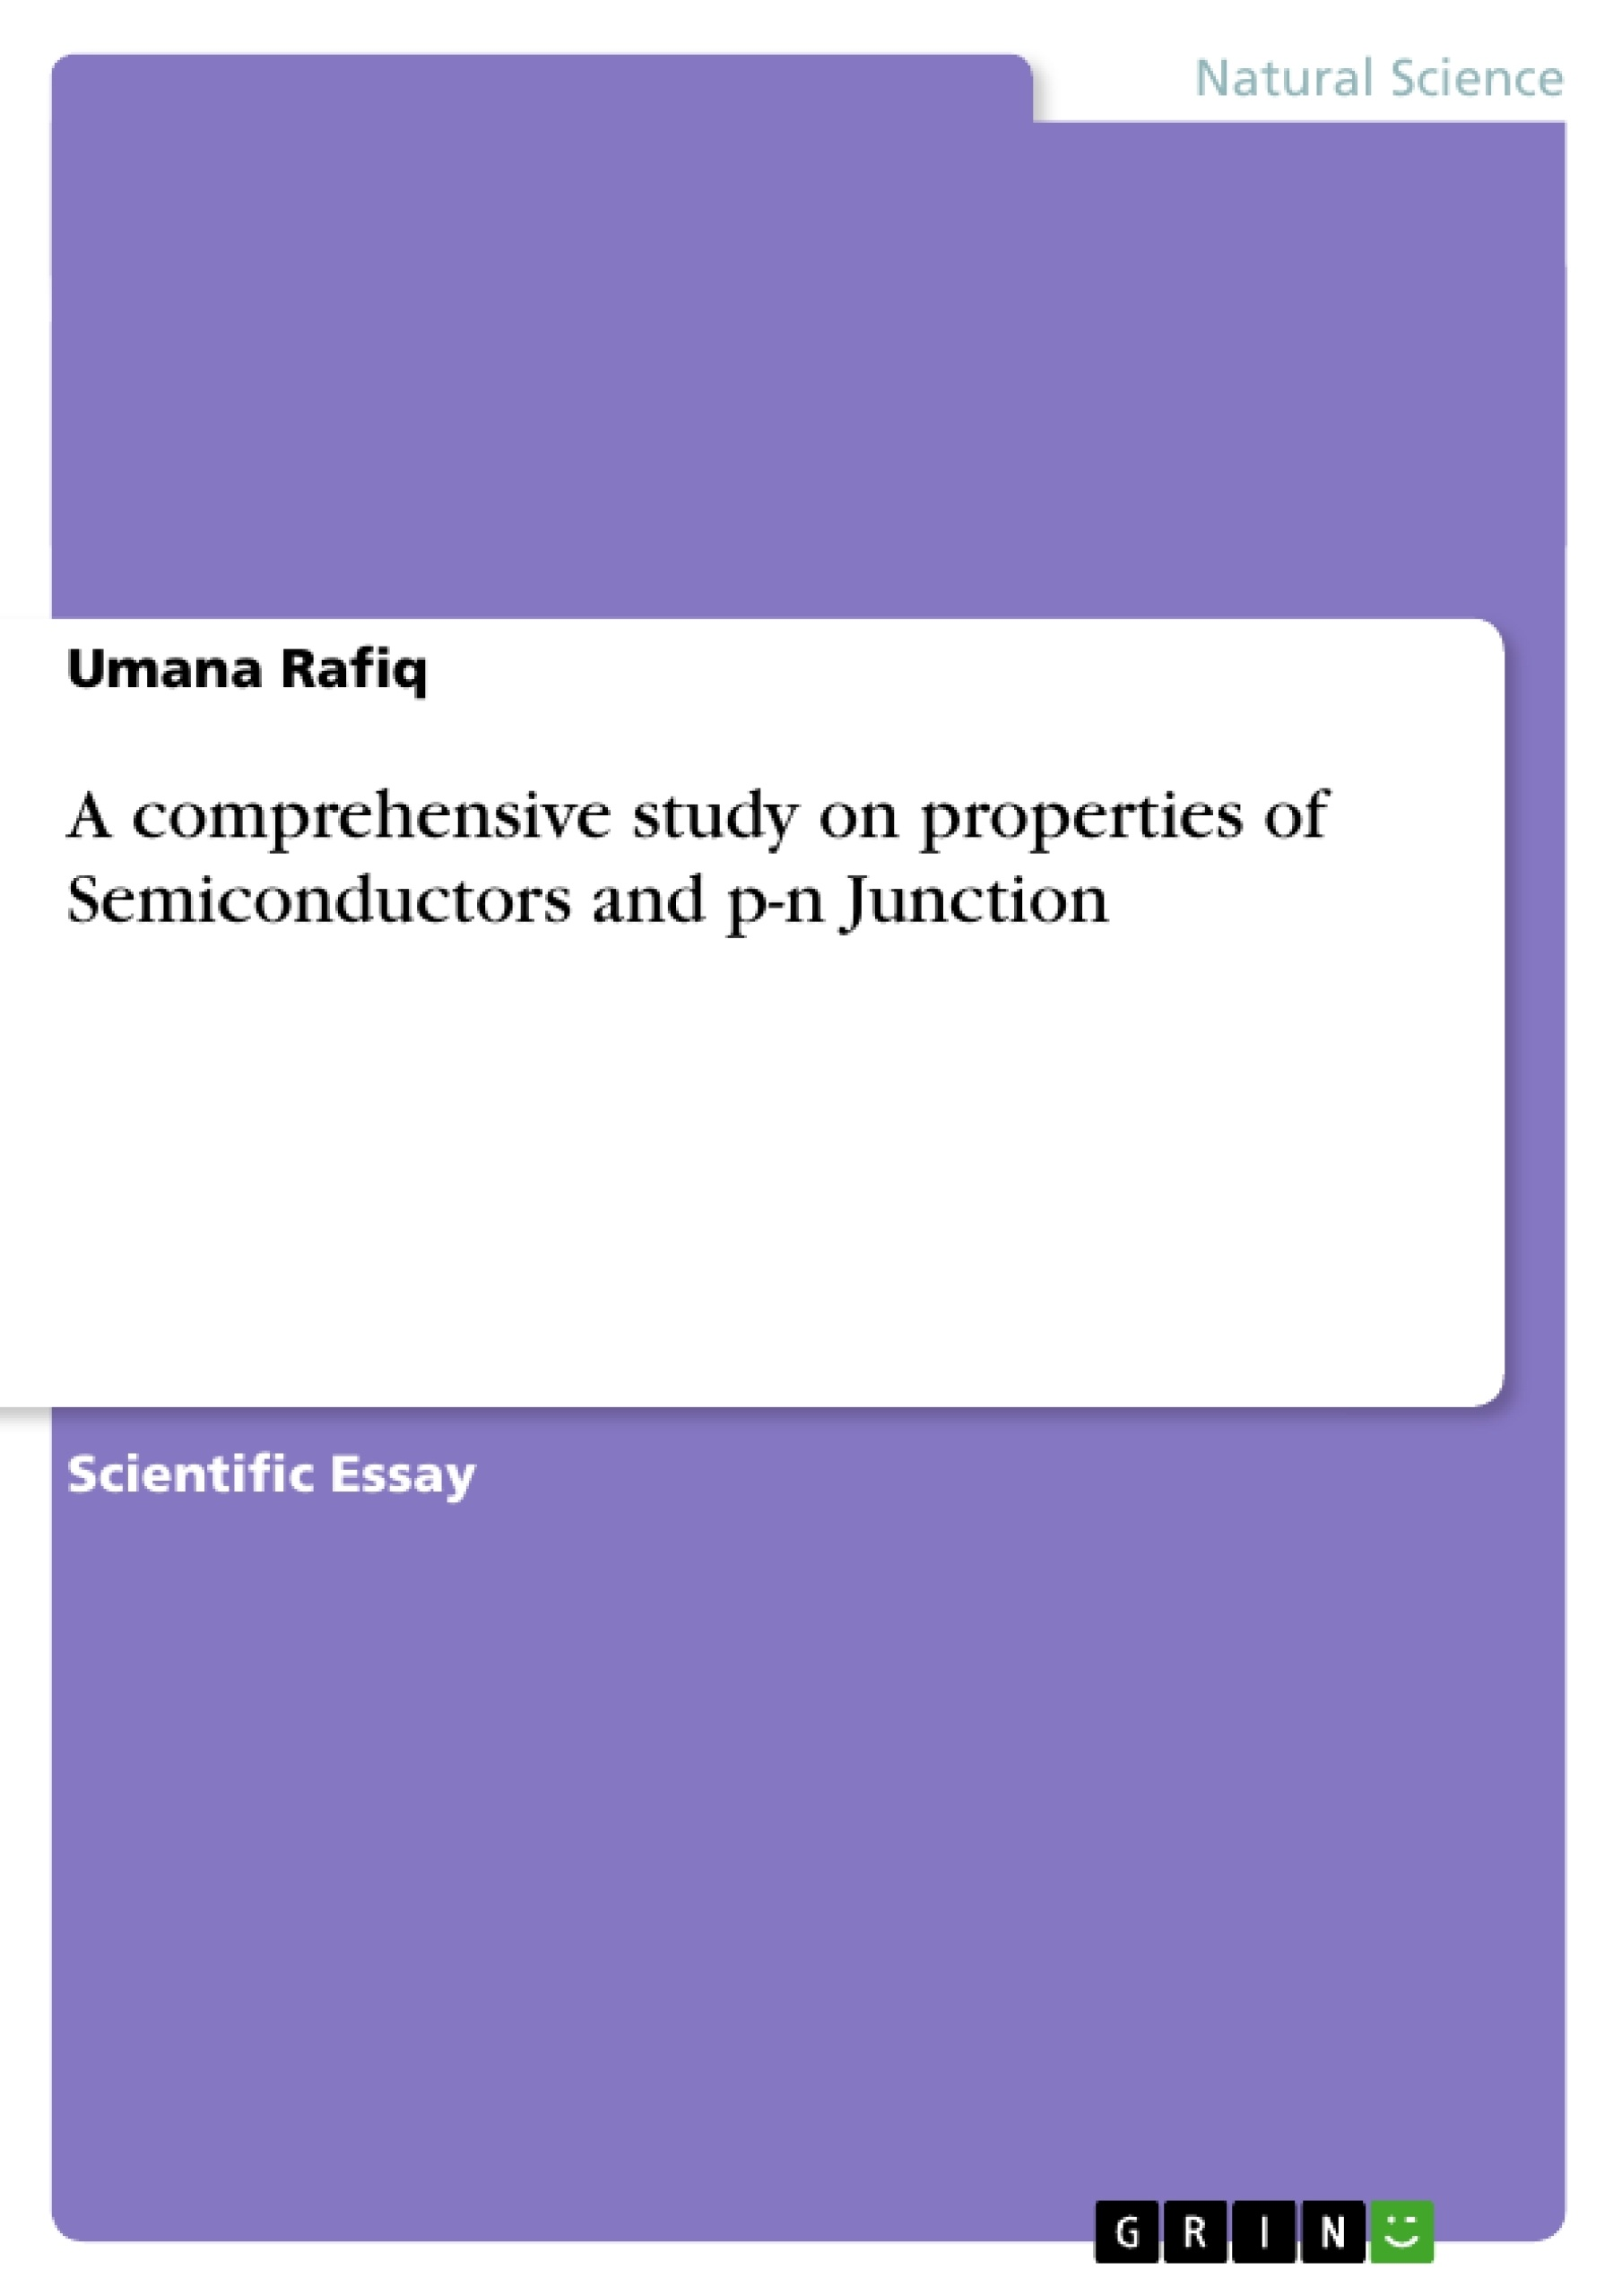 Title: A comprehensive study on properties of Semiconductors and p-n Junction